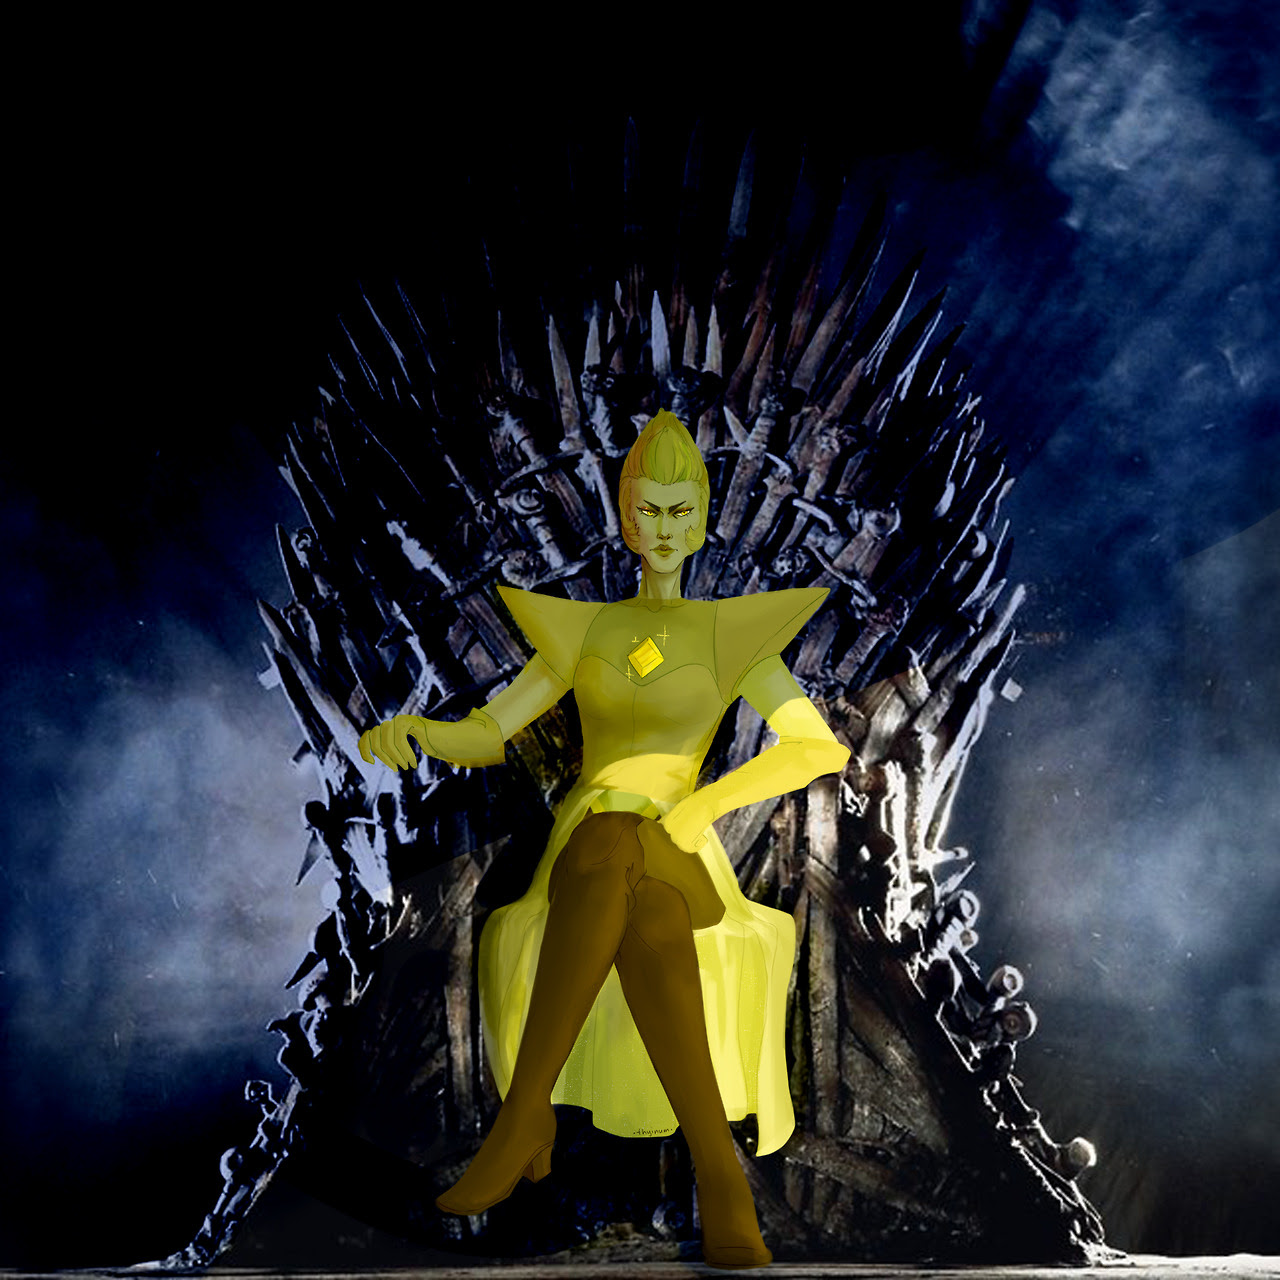 I think, Yellow Diamond is just like Cersei Lannister